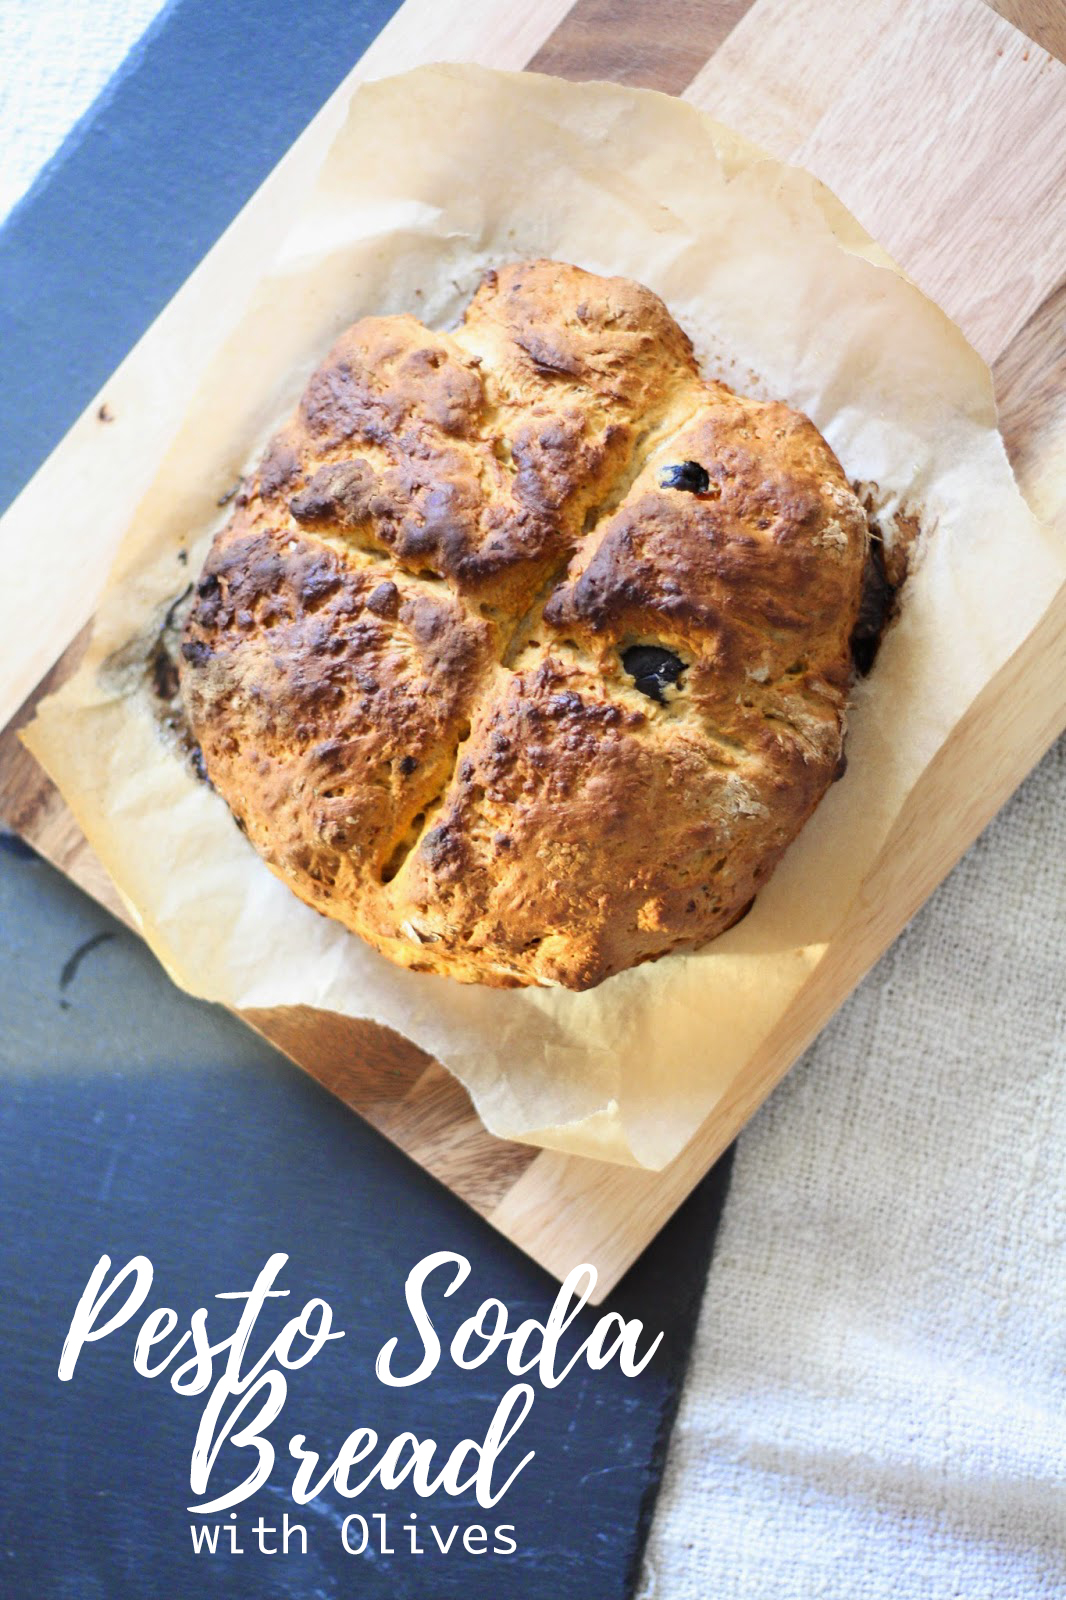 Soda bread with pesto & olives